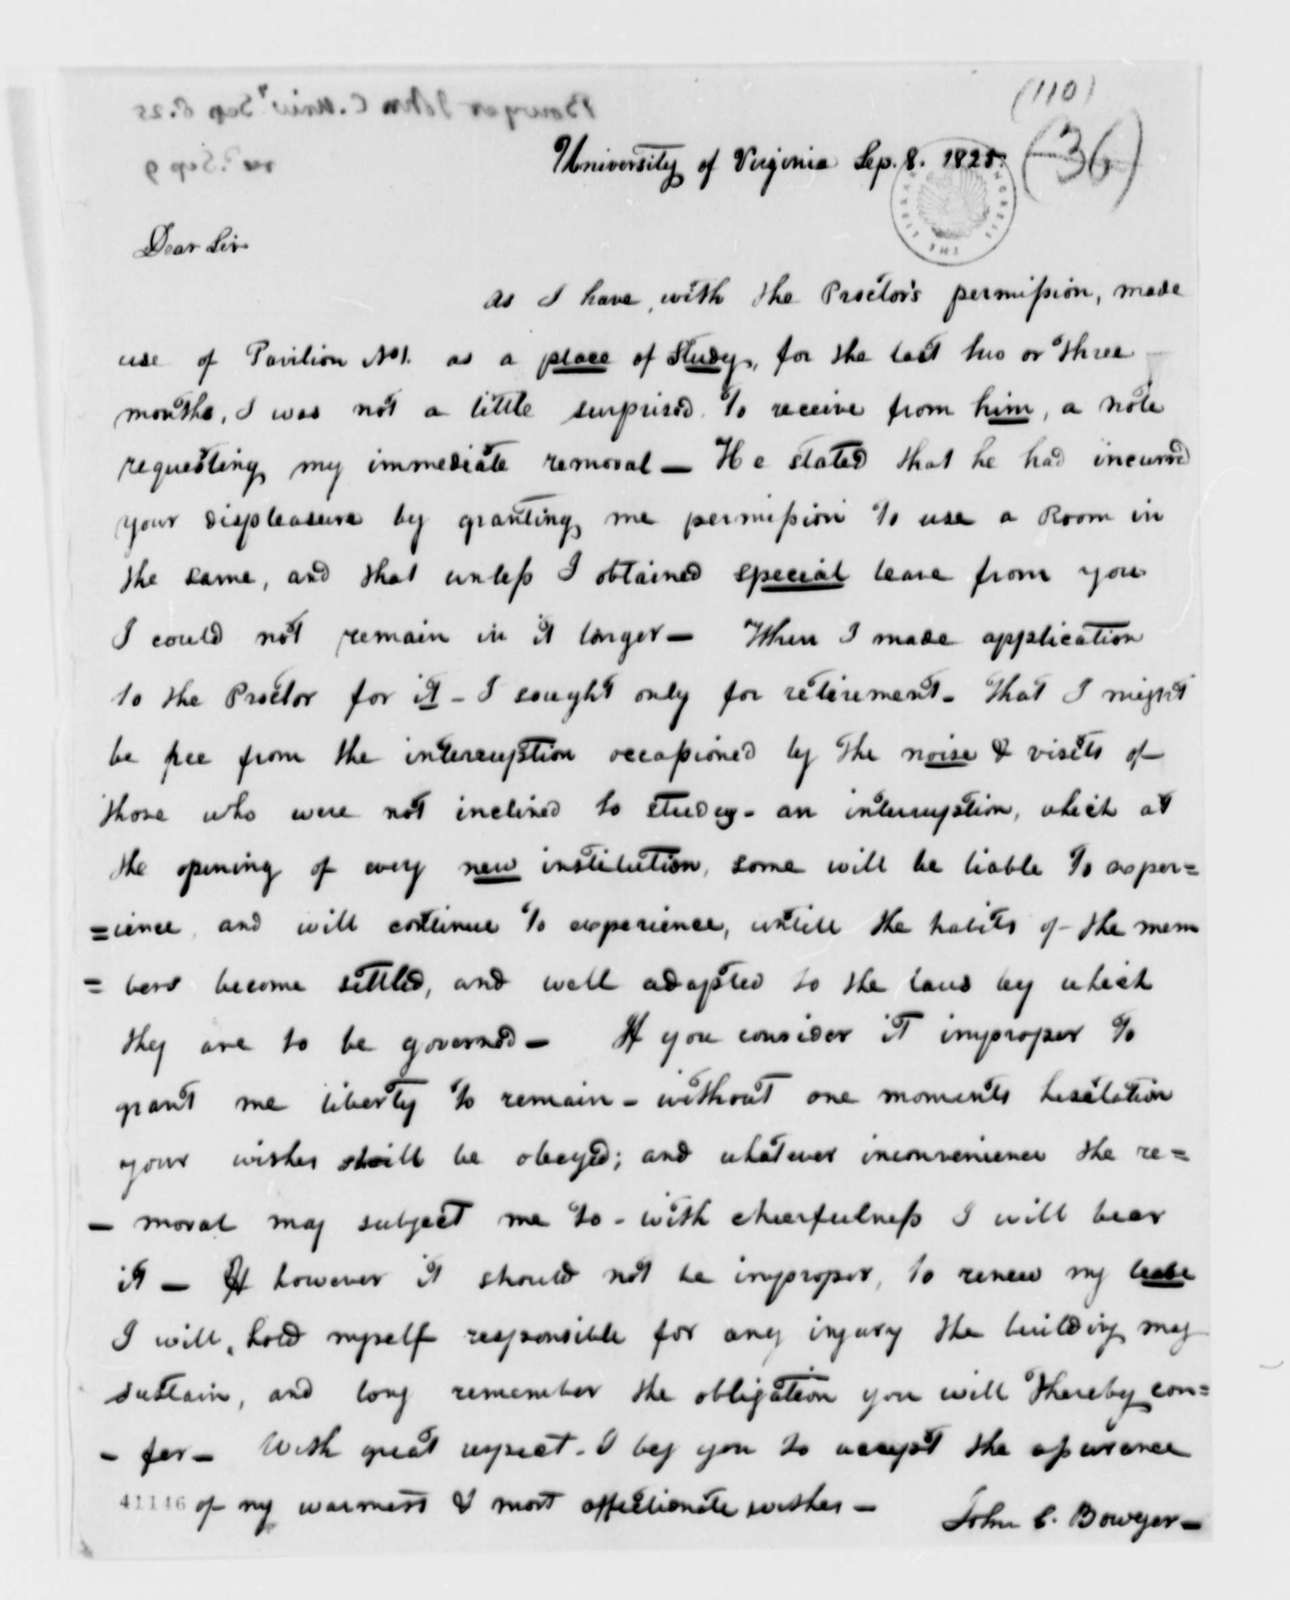 John C. Bowyer to Thomas Jefferson, September 8, 1825